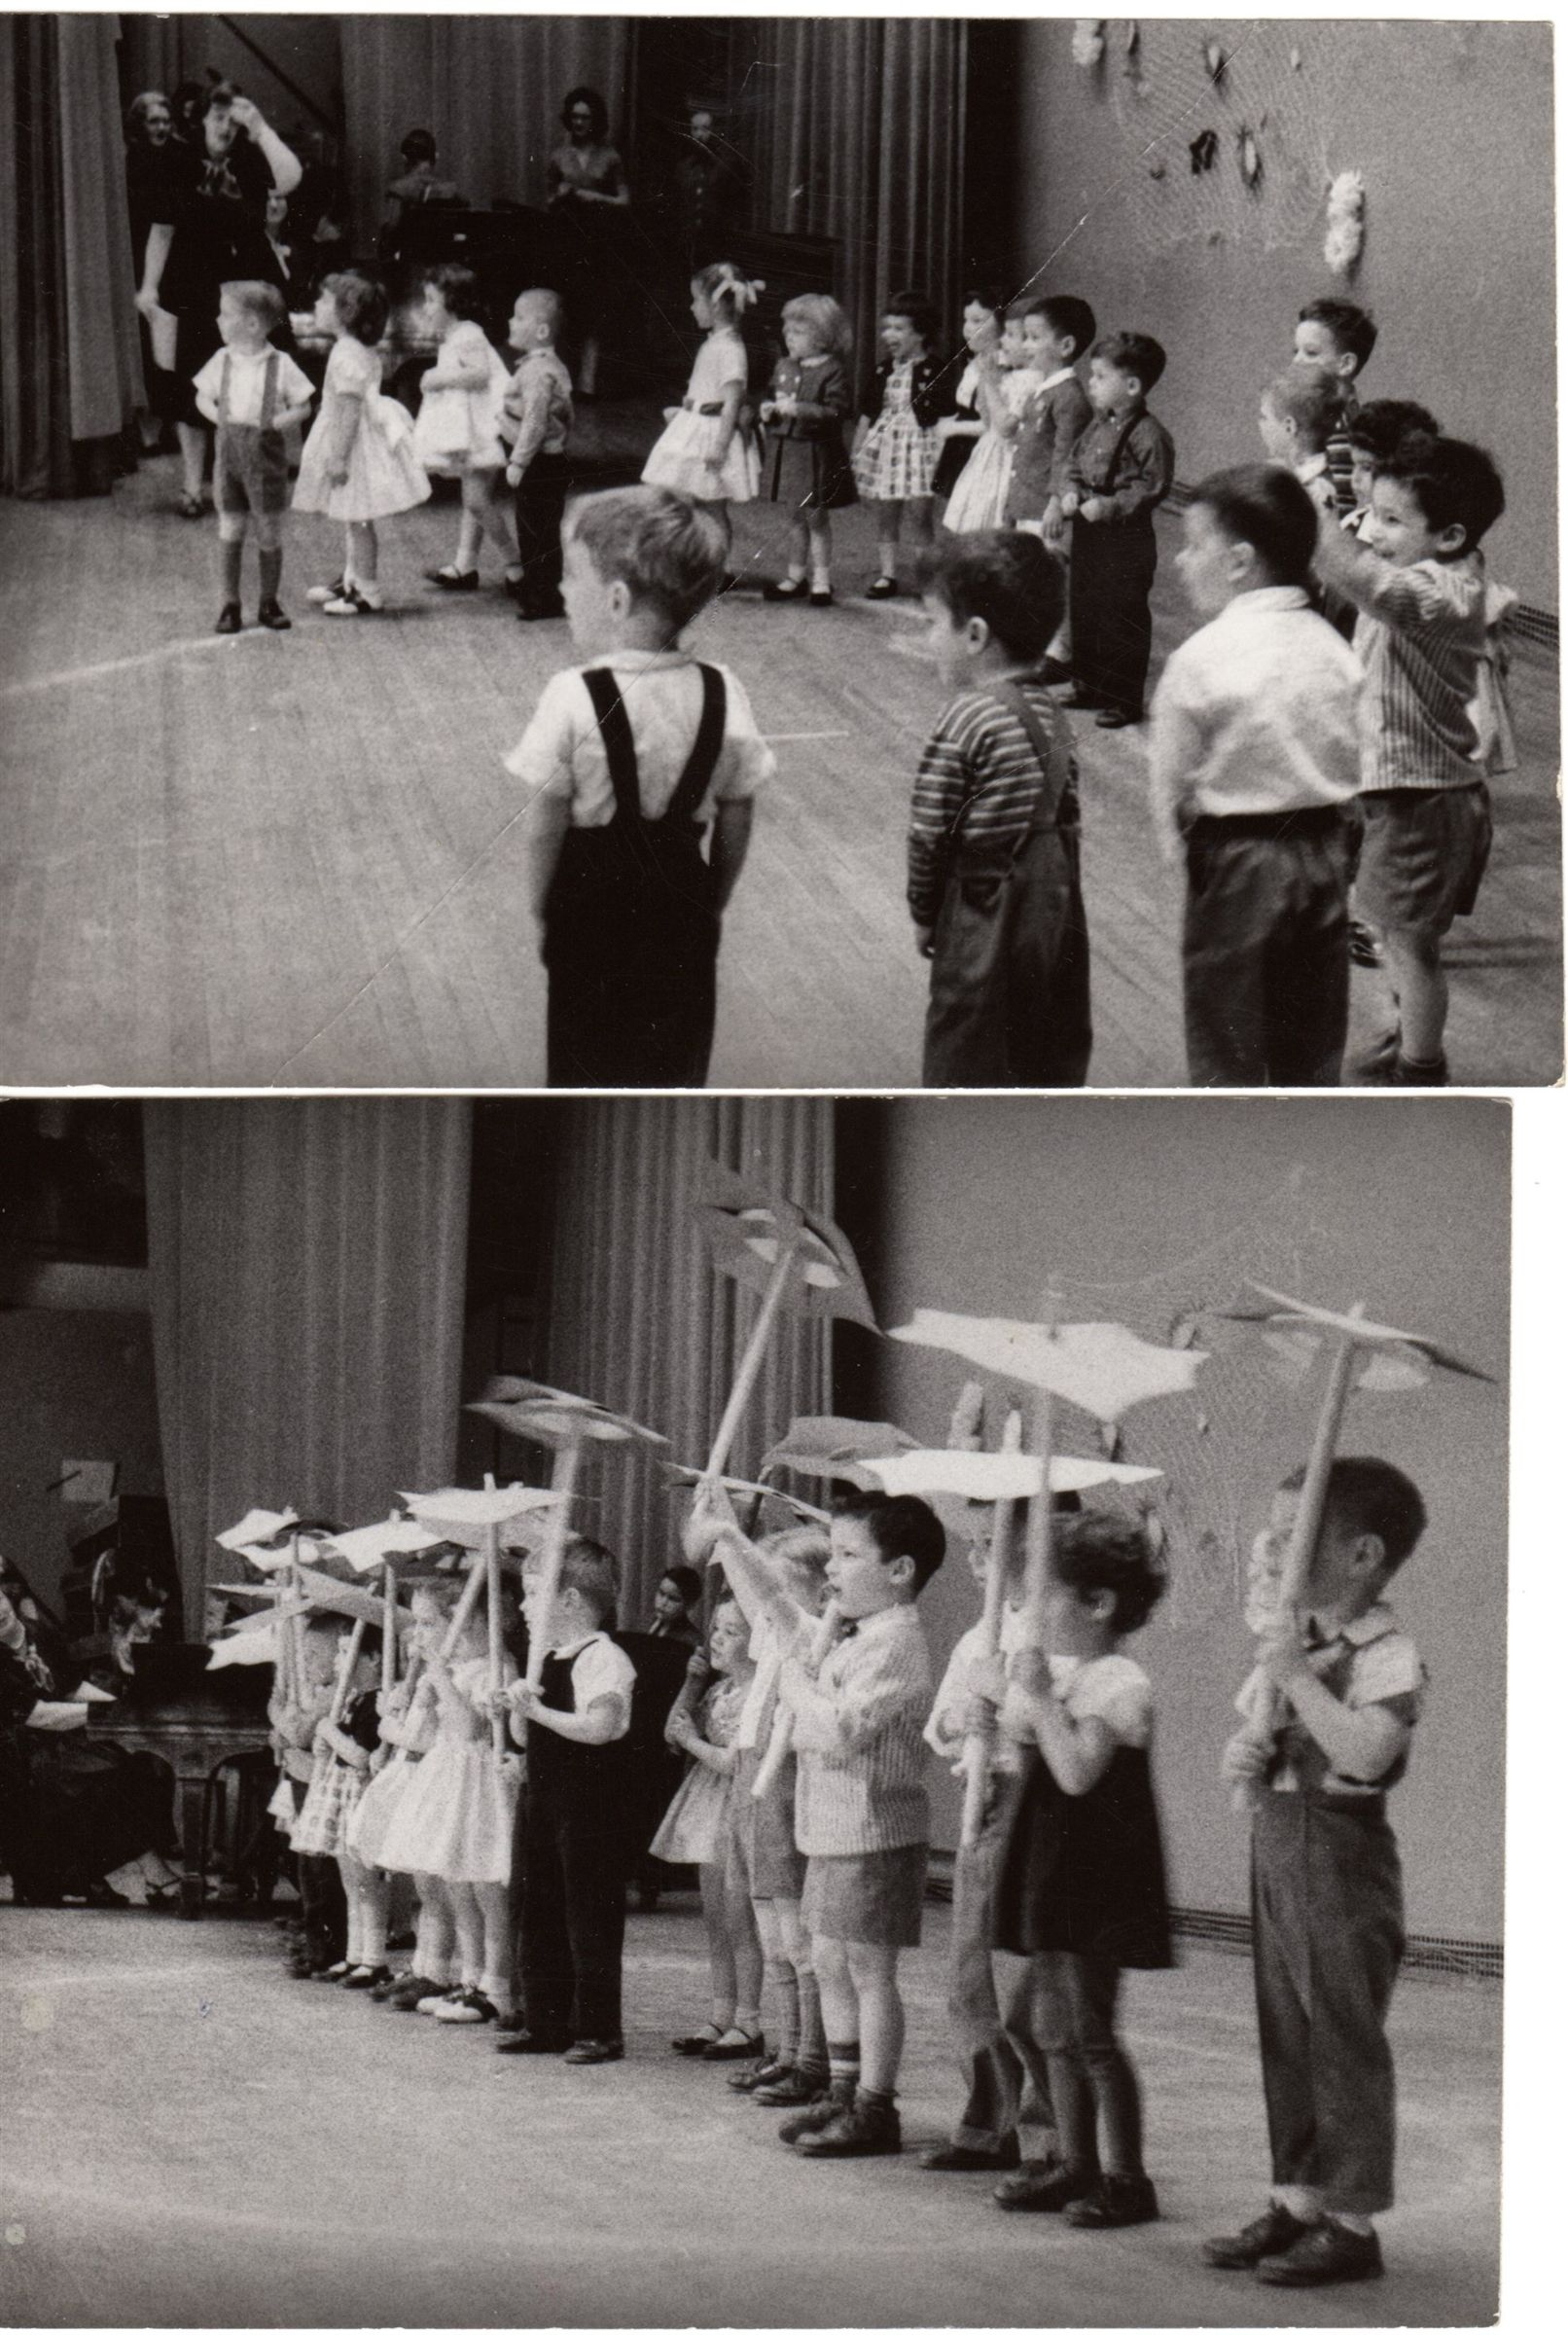 HCES Class of 1966 - Nursery School, Miss Czinner, Spring 1959, Hunter College Playhouse